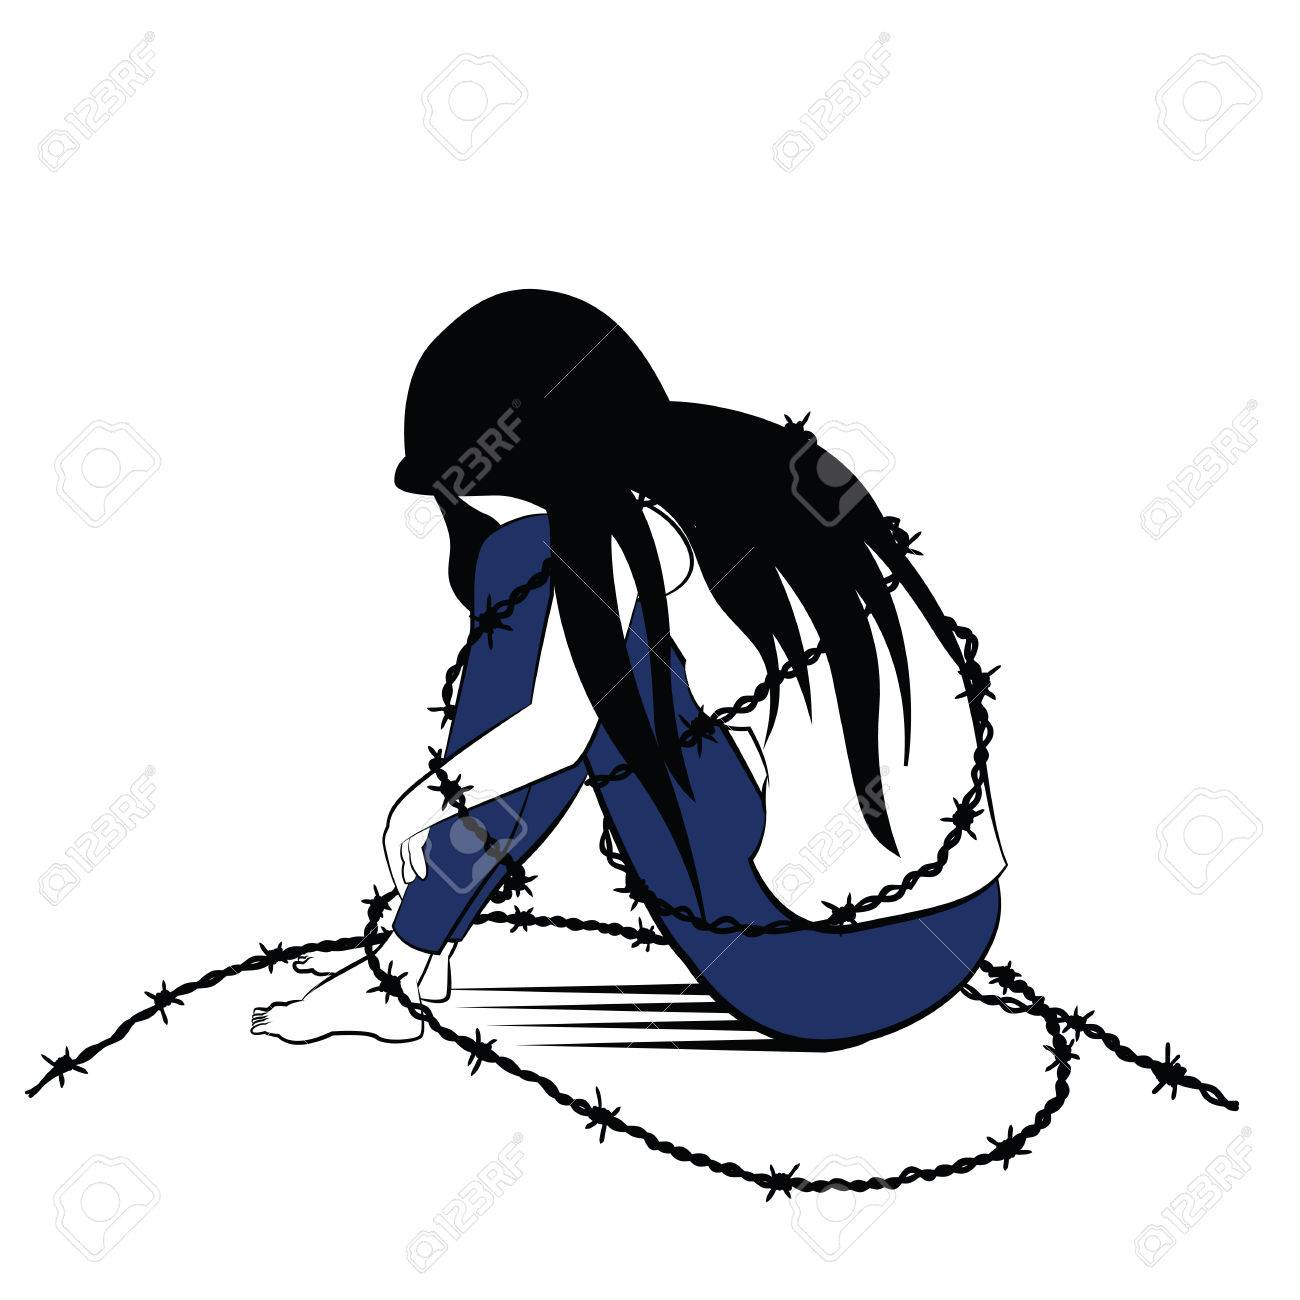 1300x1300 Vector Illustration Drawing In Ink Sketching Style, Lonely Woman